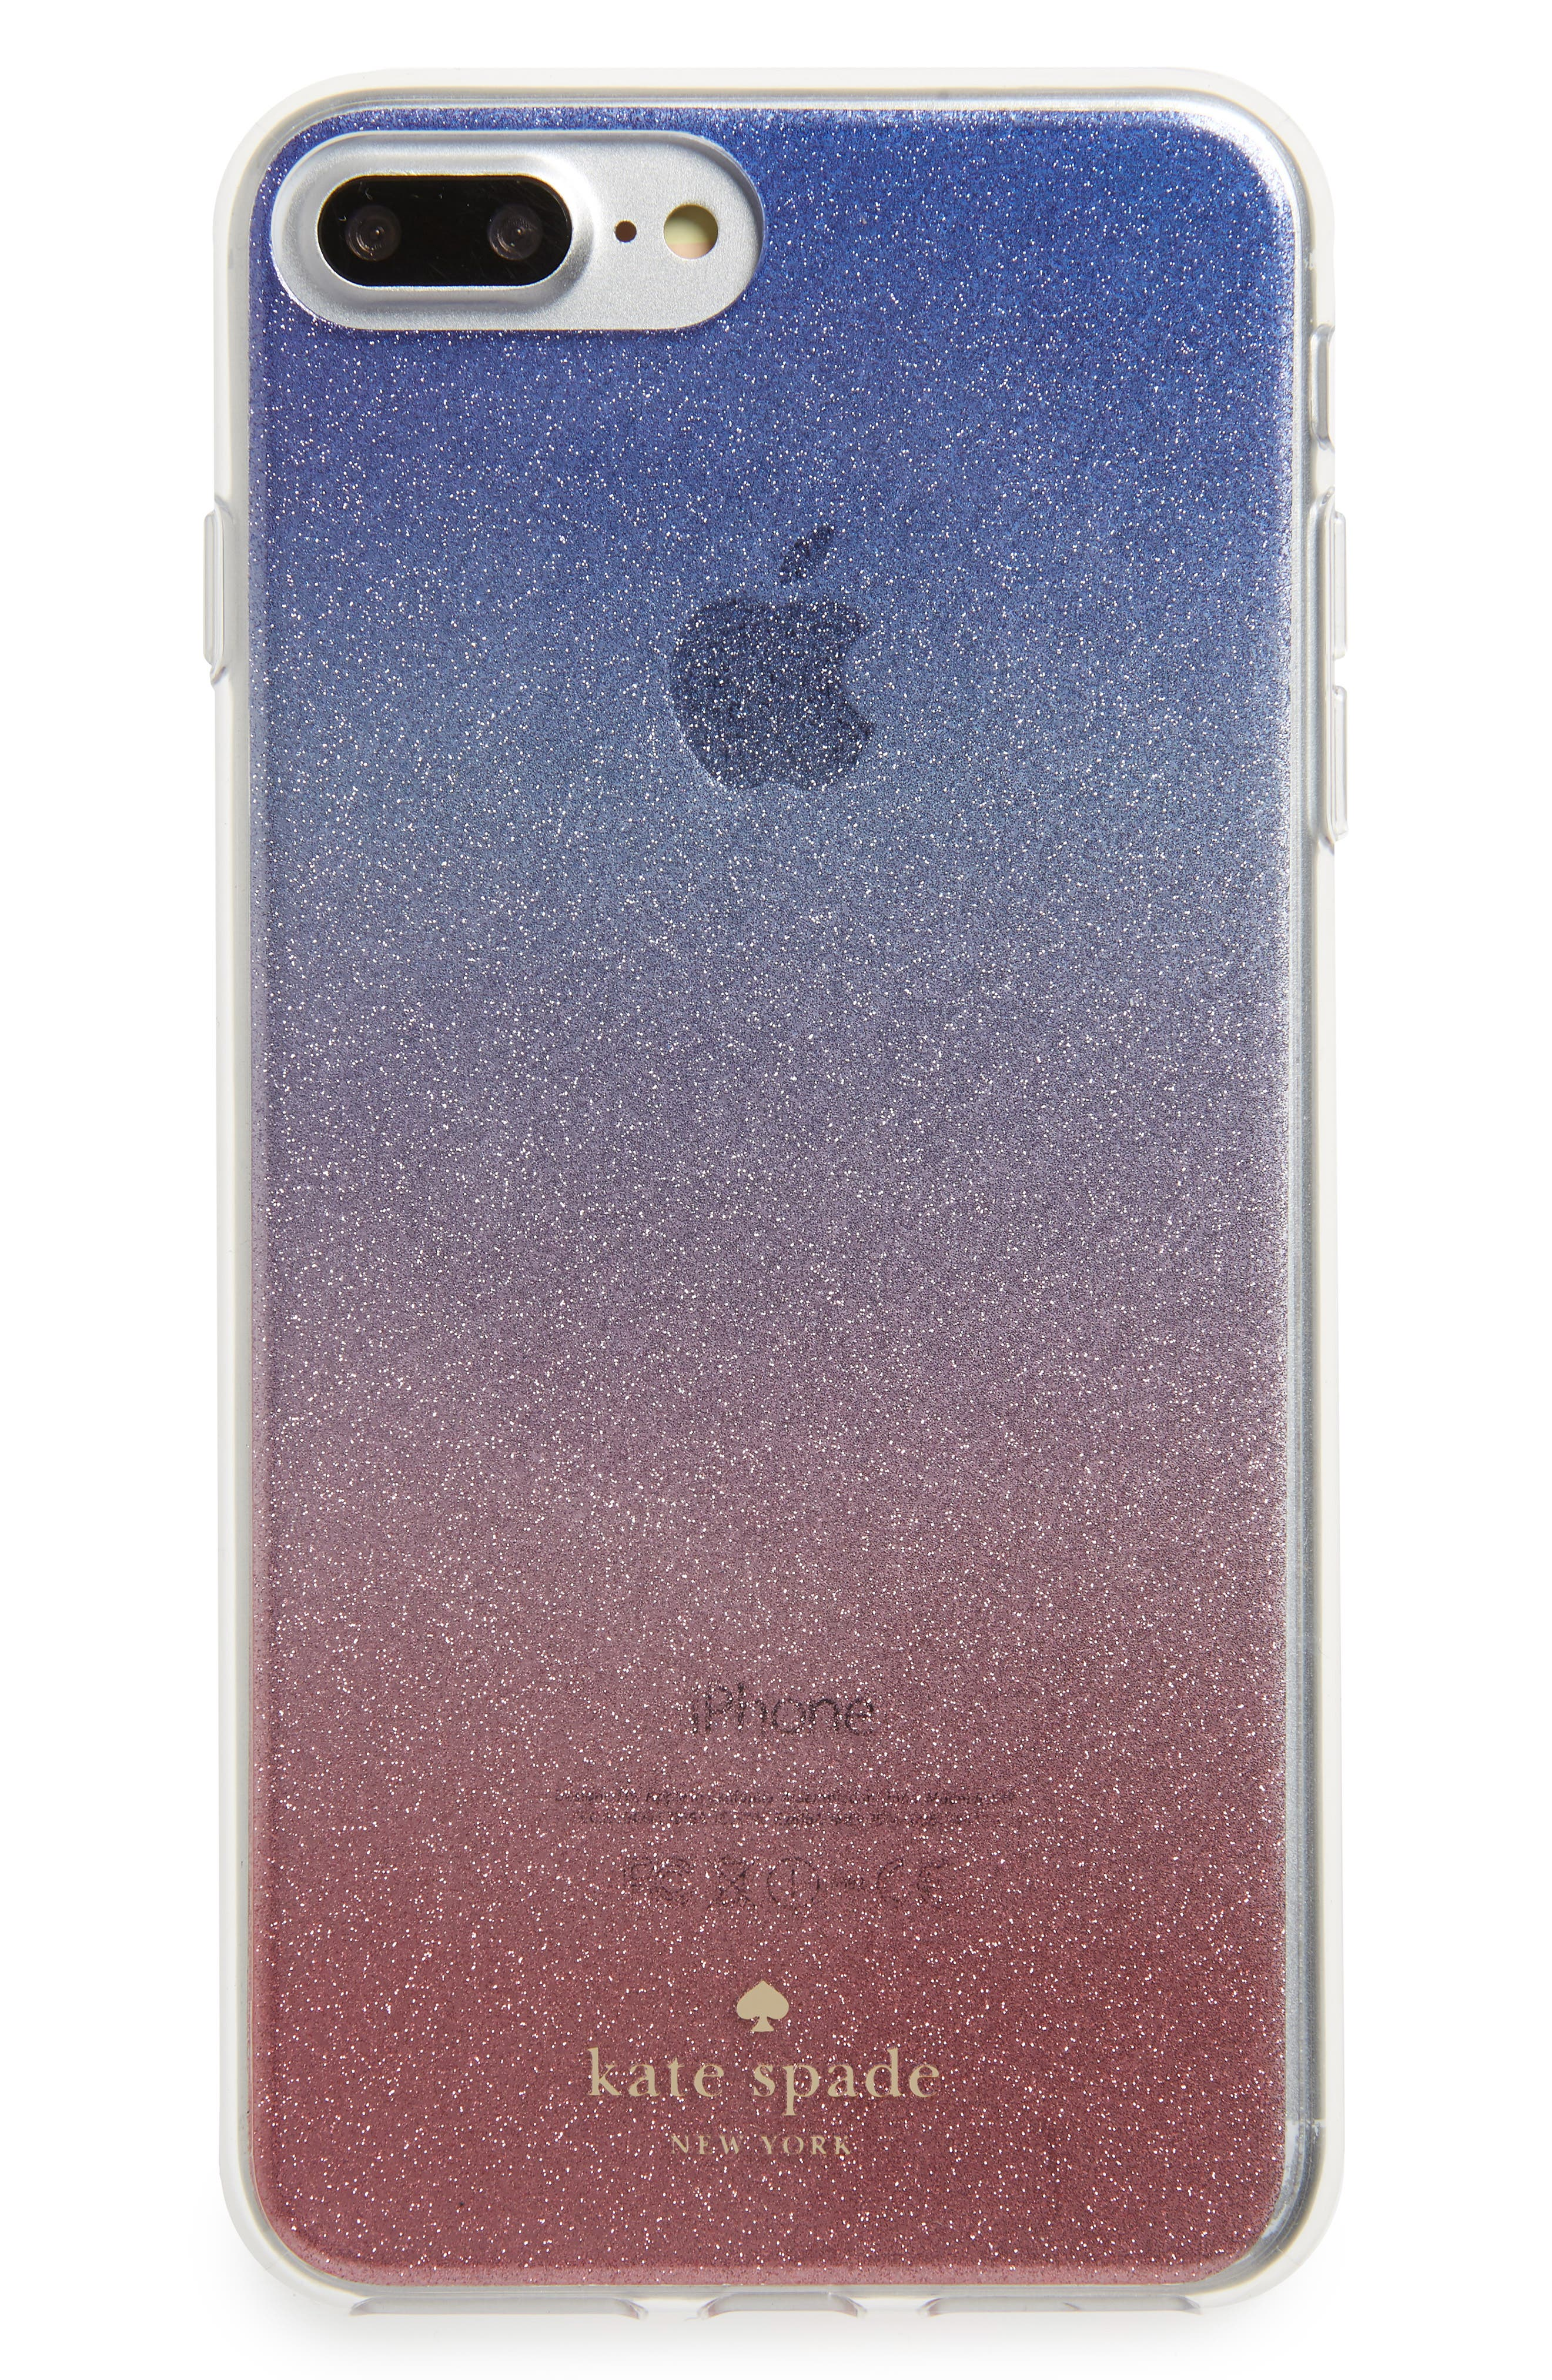 KATE SPADE NEW YORK,                             ombré sunset glitter iPhone 7/8 & 7/8 Plus case,                             Main thumbnail 1, color,                             655